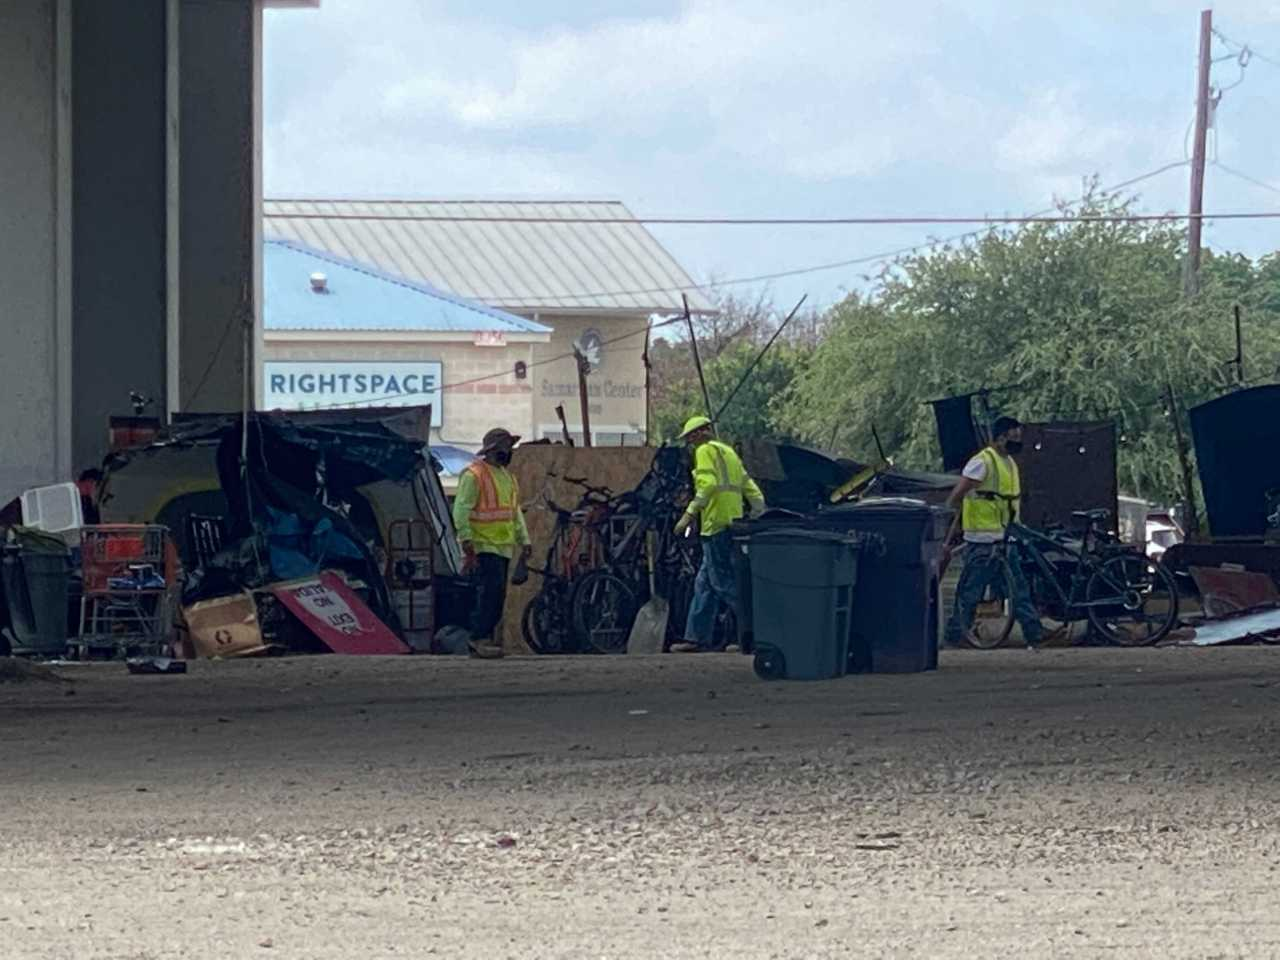 City delays release of approved Austin homeless encampments, citing too many restrictions